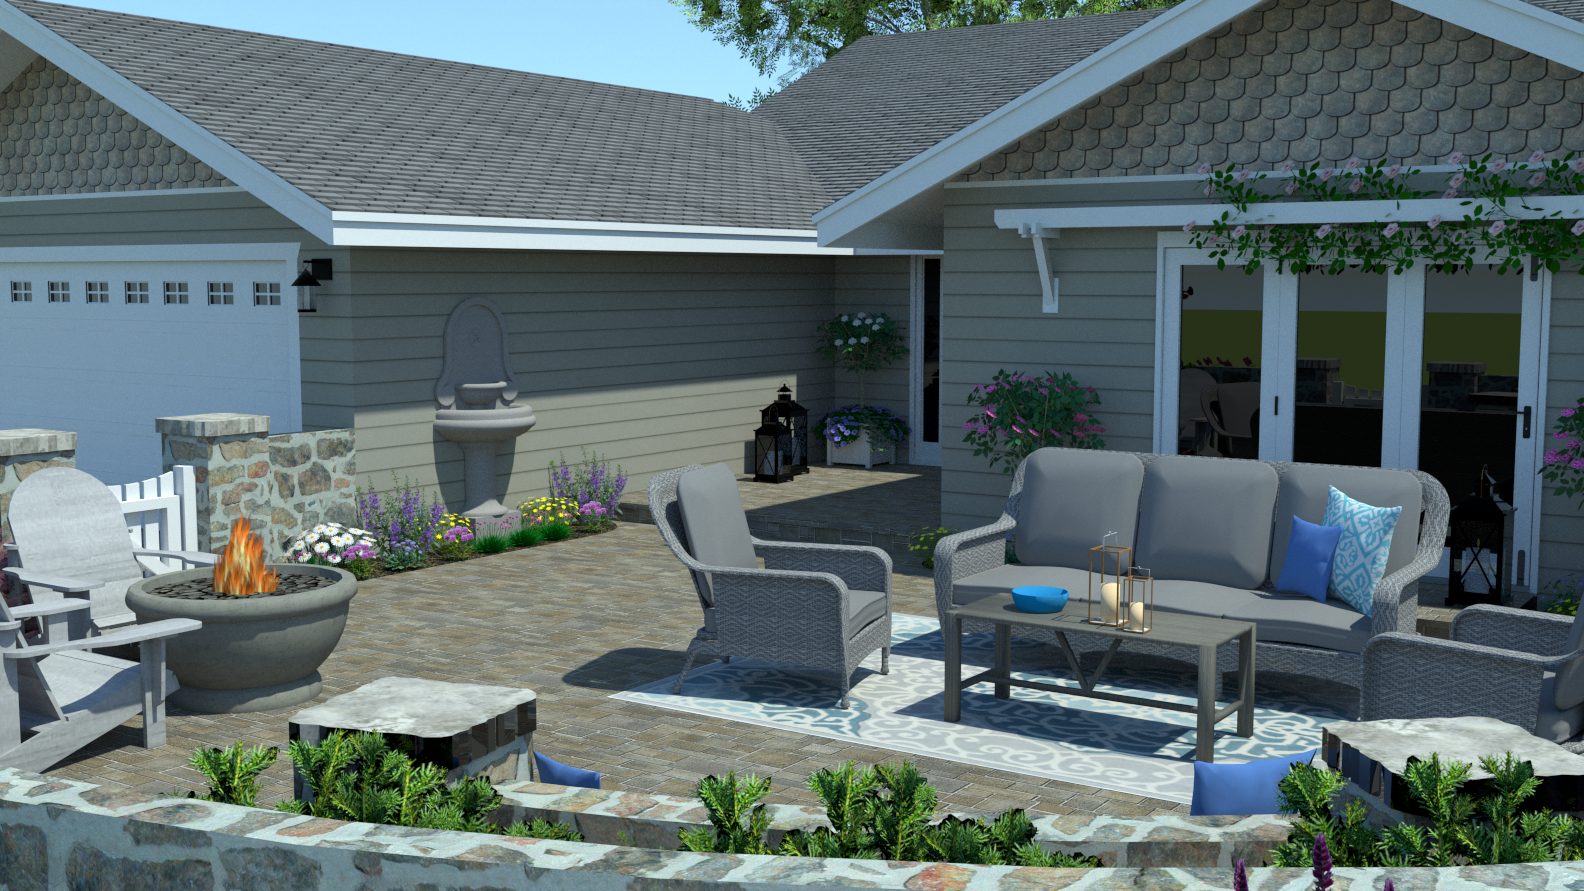 AutoSave_ANNA AND GREG FERREE_12-28-2016_SKETCHUP-2016-FRONT GARDEN_1-Scene 13.png